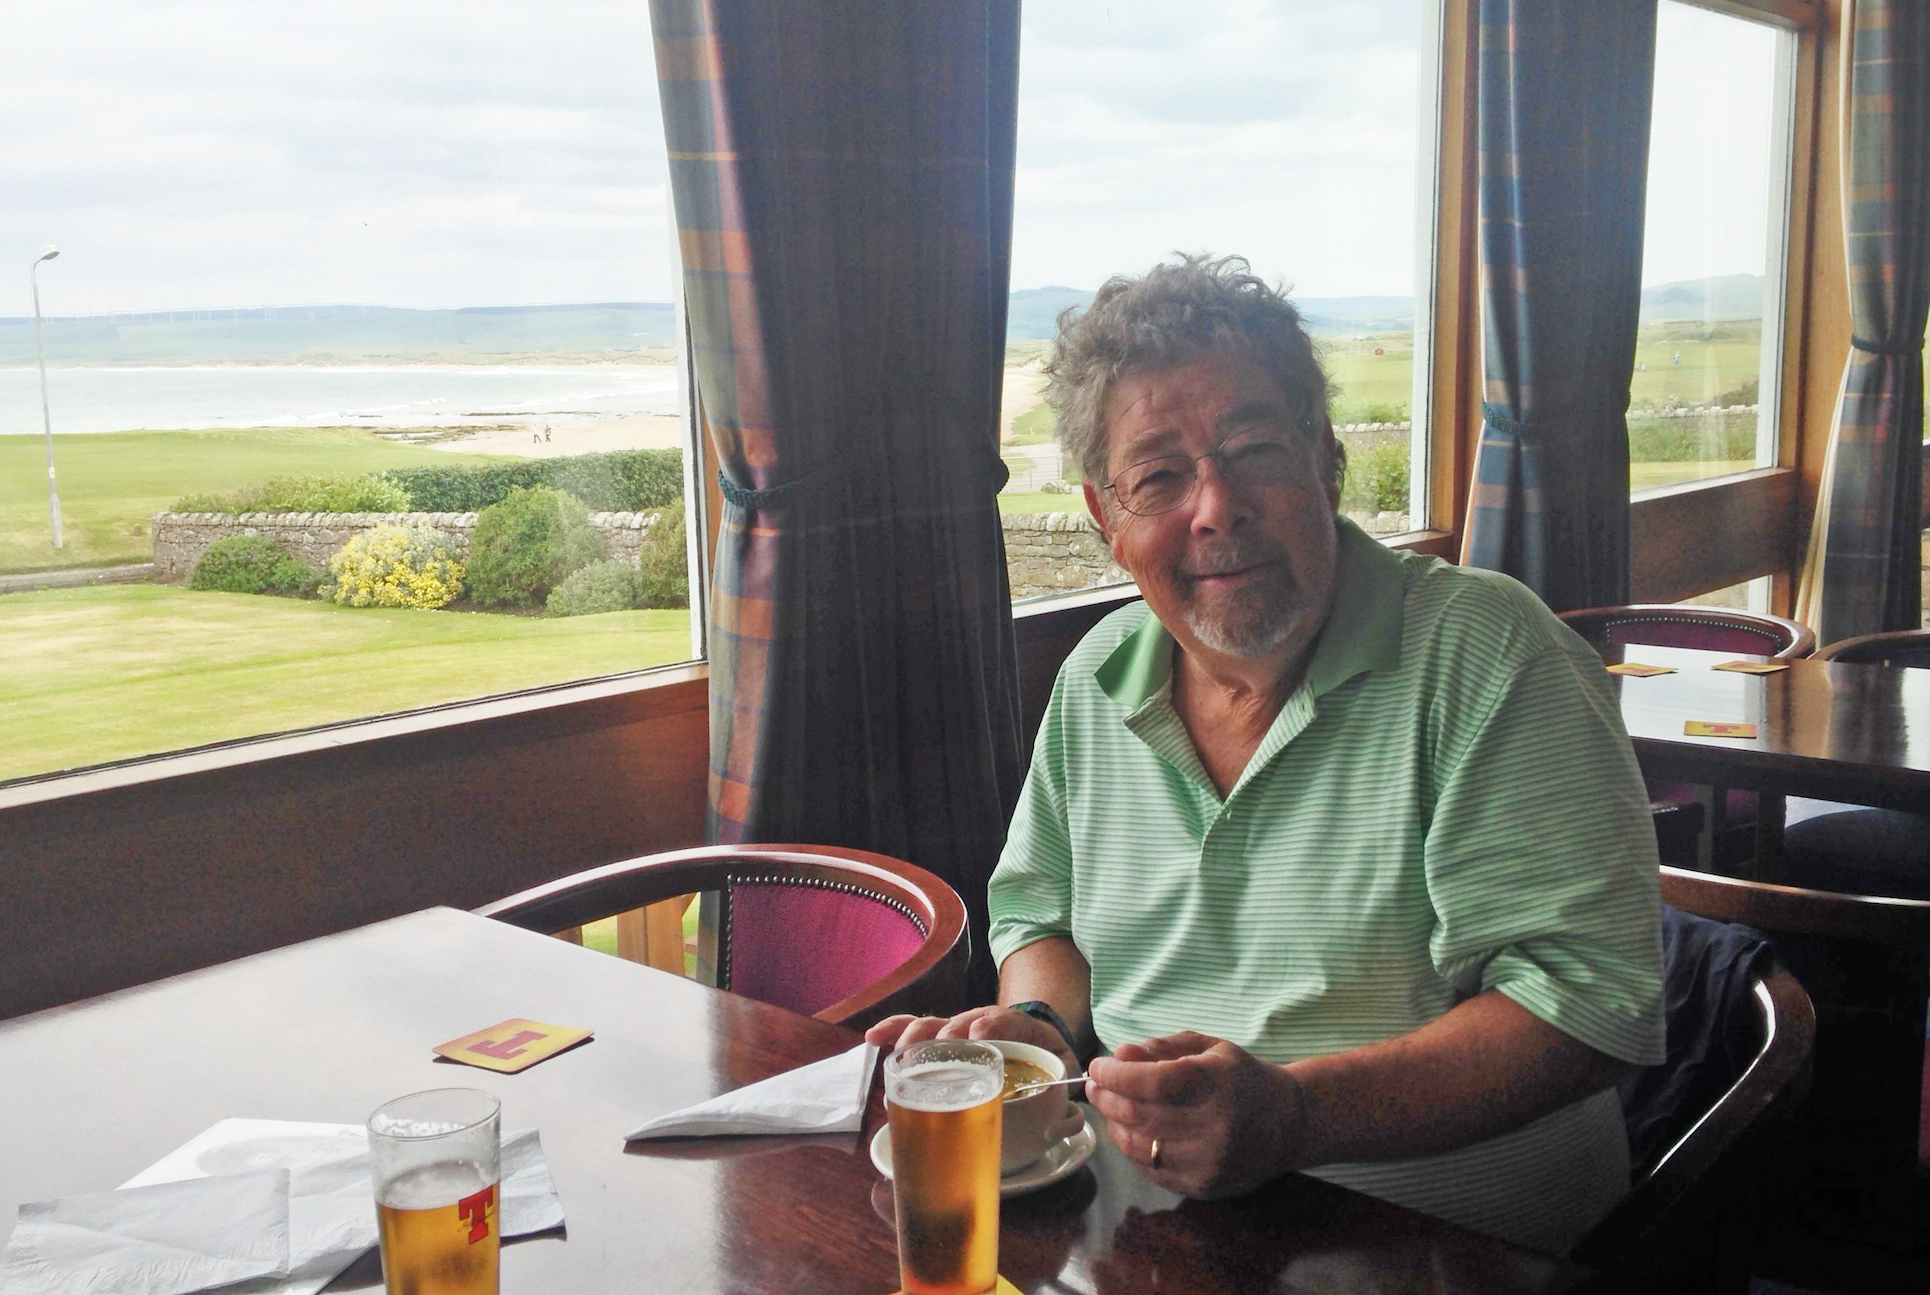 Machrihanish clubhouse: A pint, some soup and a great view.